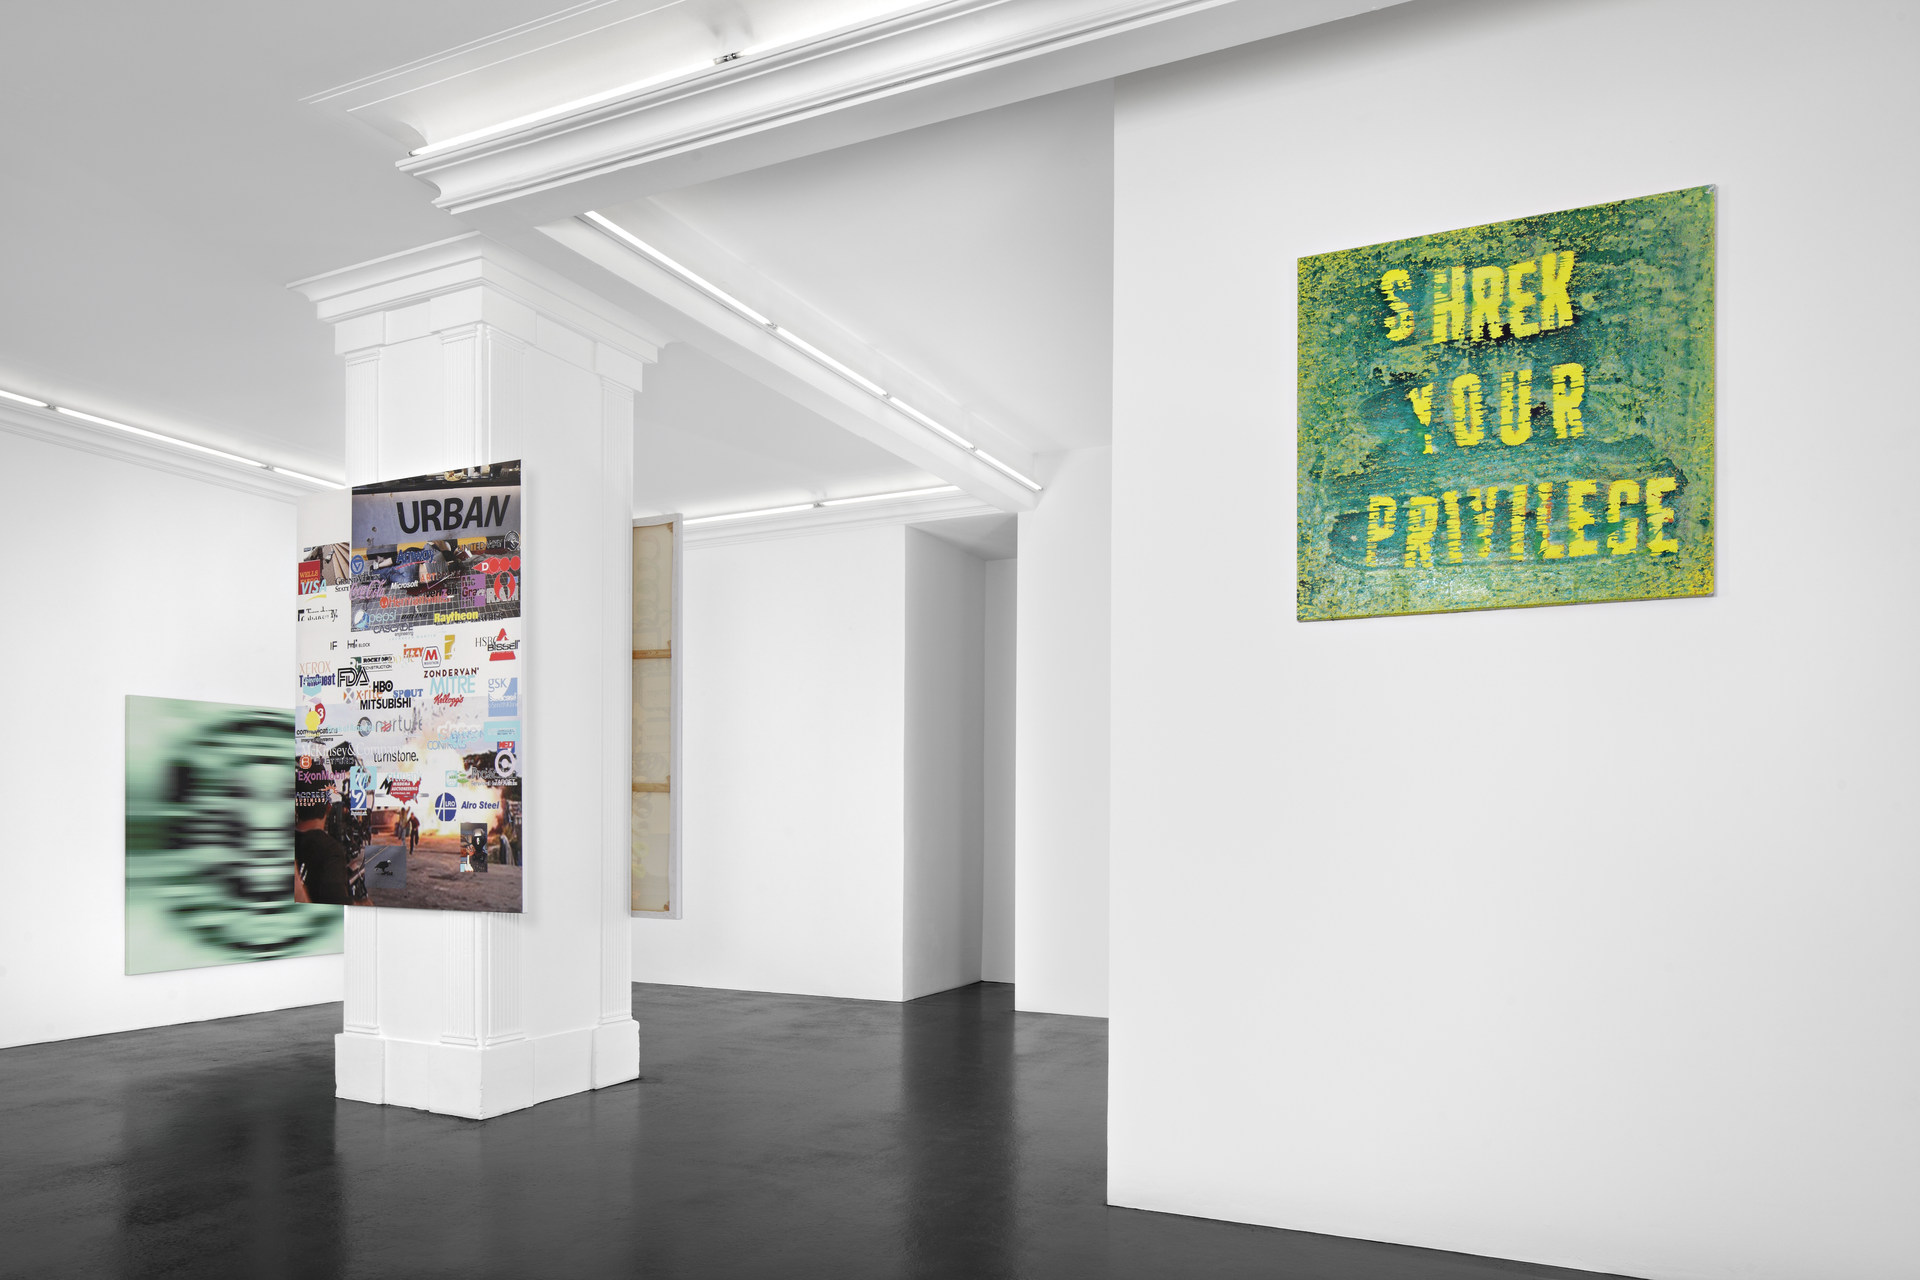 MF-Astroturf Yelp Review Says Yes-Installation View-14-HIRES